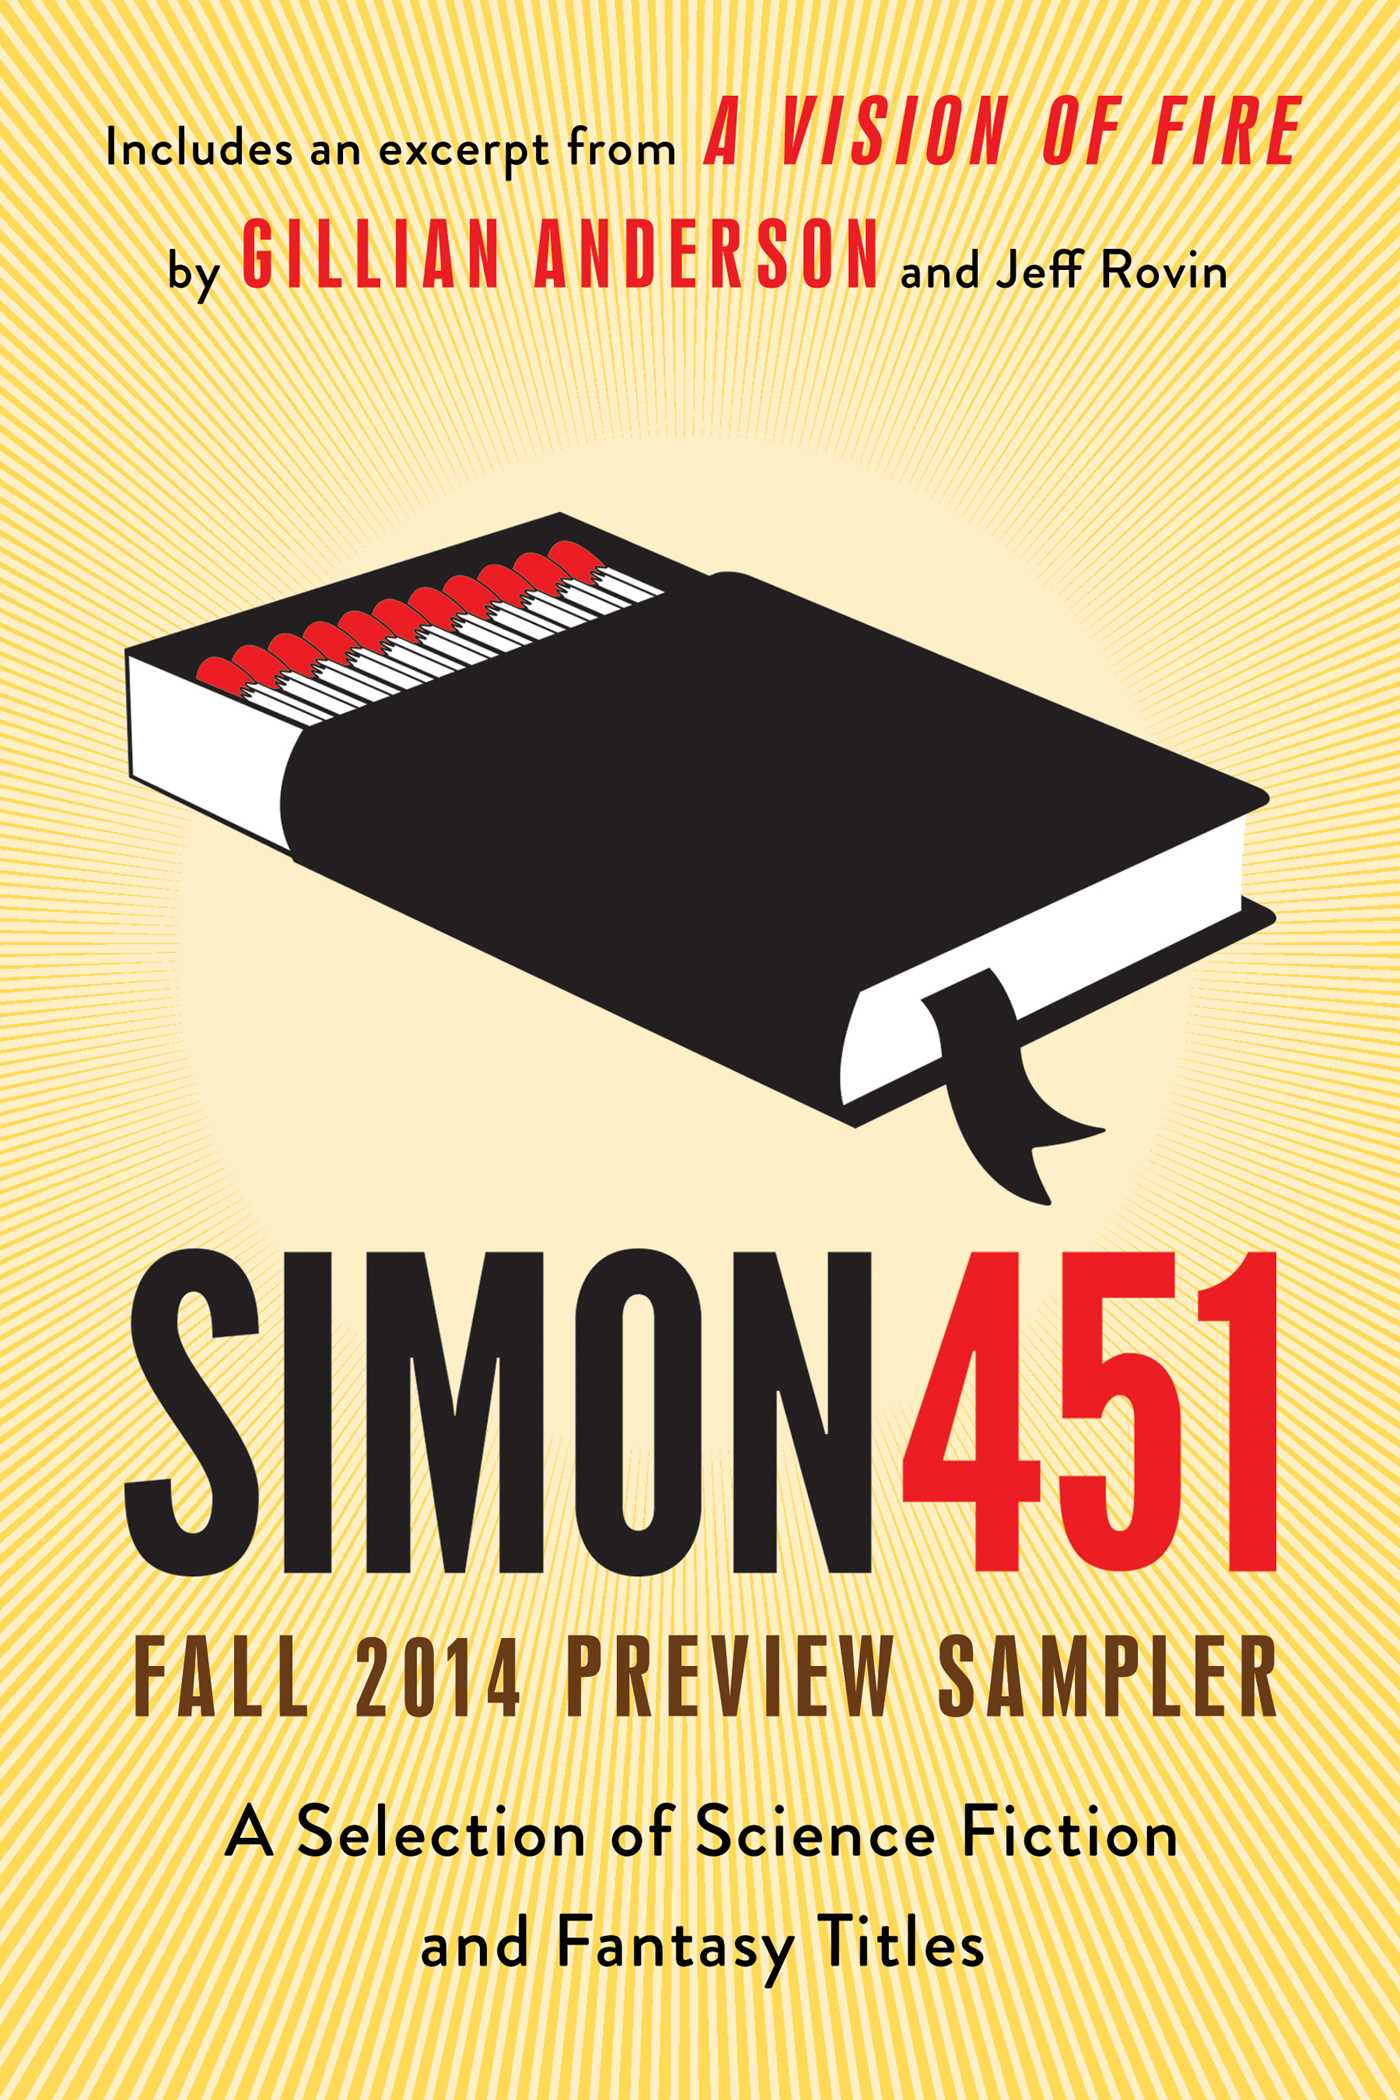 Simon451 fall 2014 preview sampler 9781476791999 hr